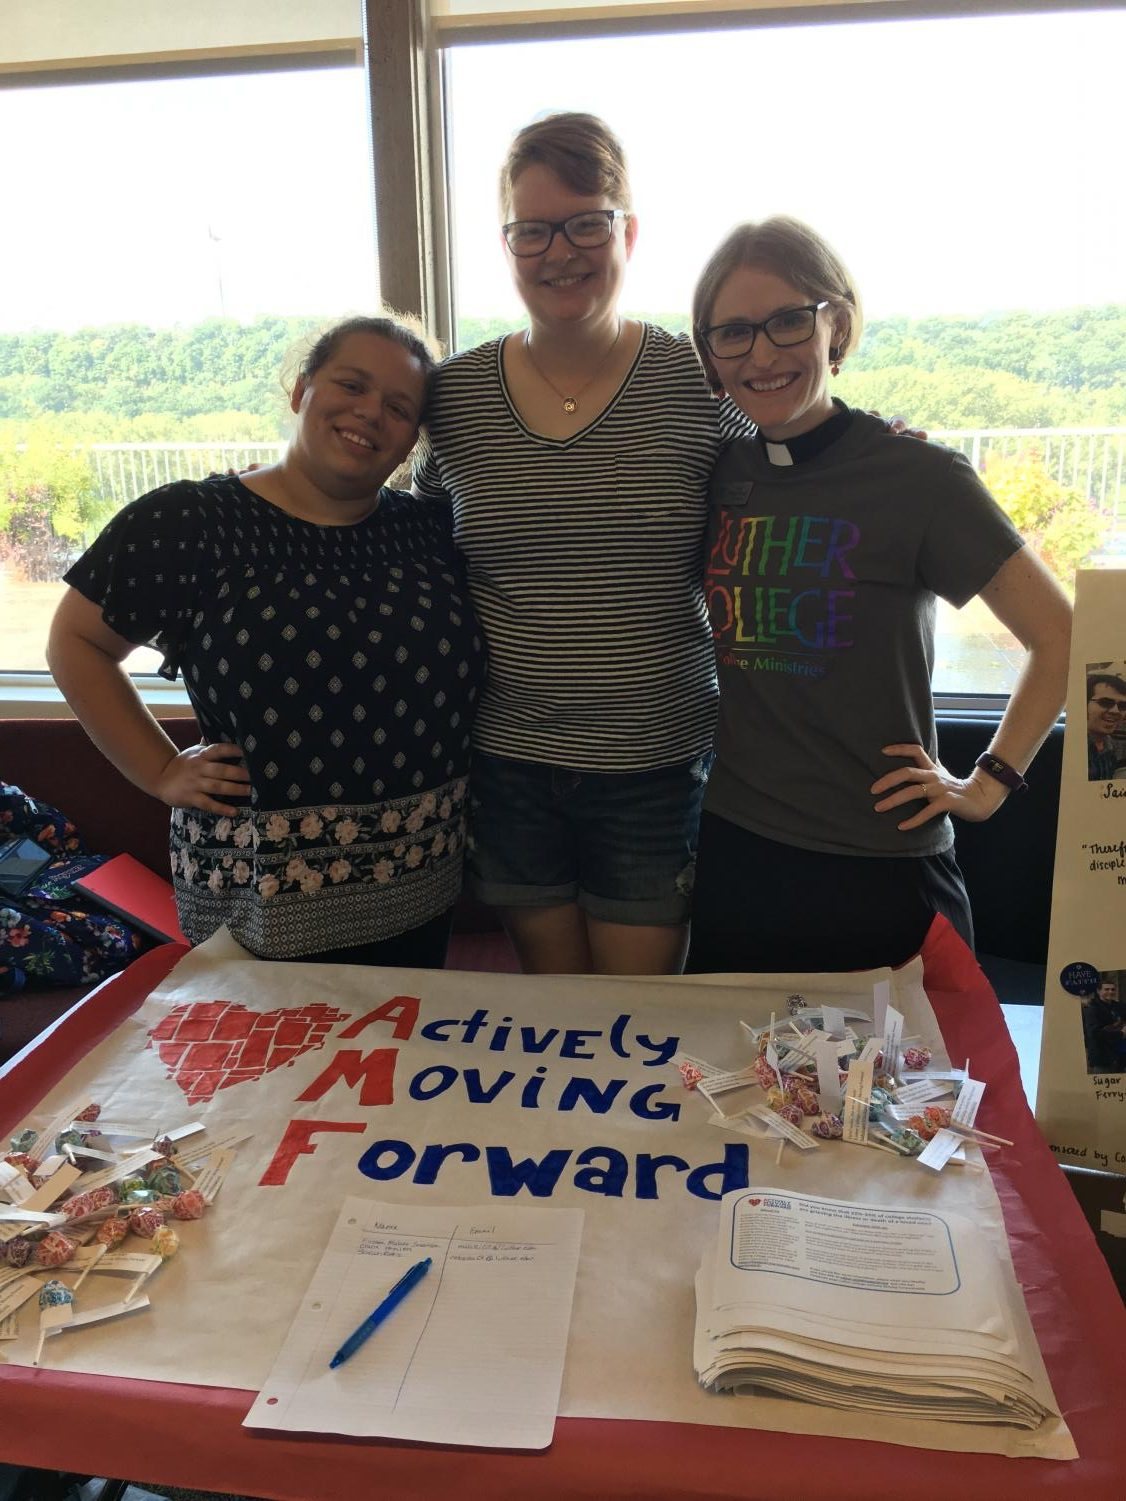 Alex Atal ('19), Jana Mueller ('19), Pastor Annie Edison-Albright advertising Actively Moving Forward at the Fall Activities Fair